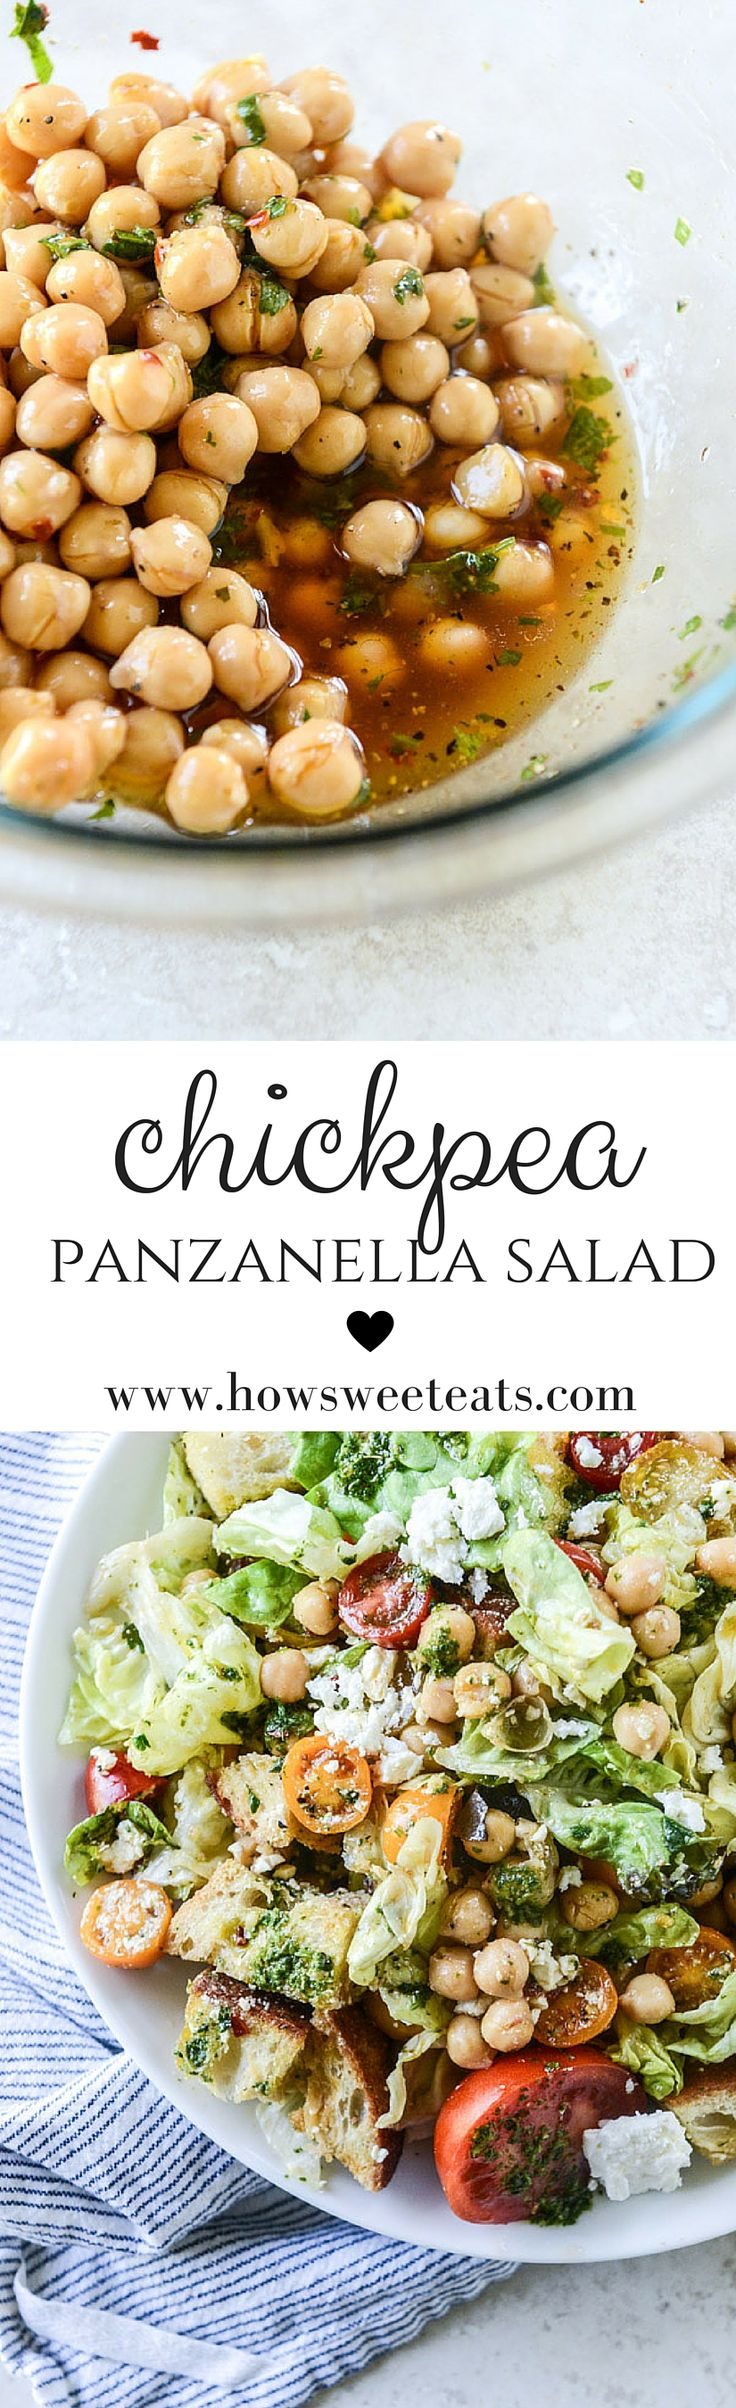 Panzanella with Marinated Chickpeas and Chimichurri by @howsweeteats I howsweeteats.com